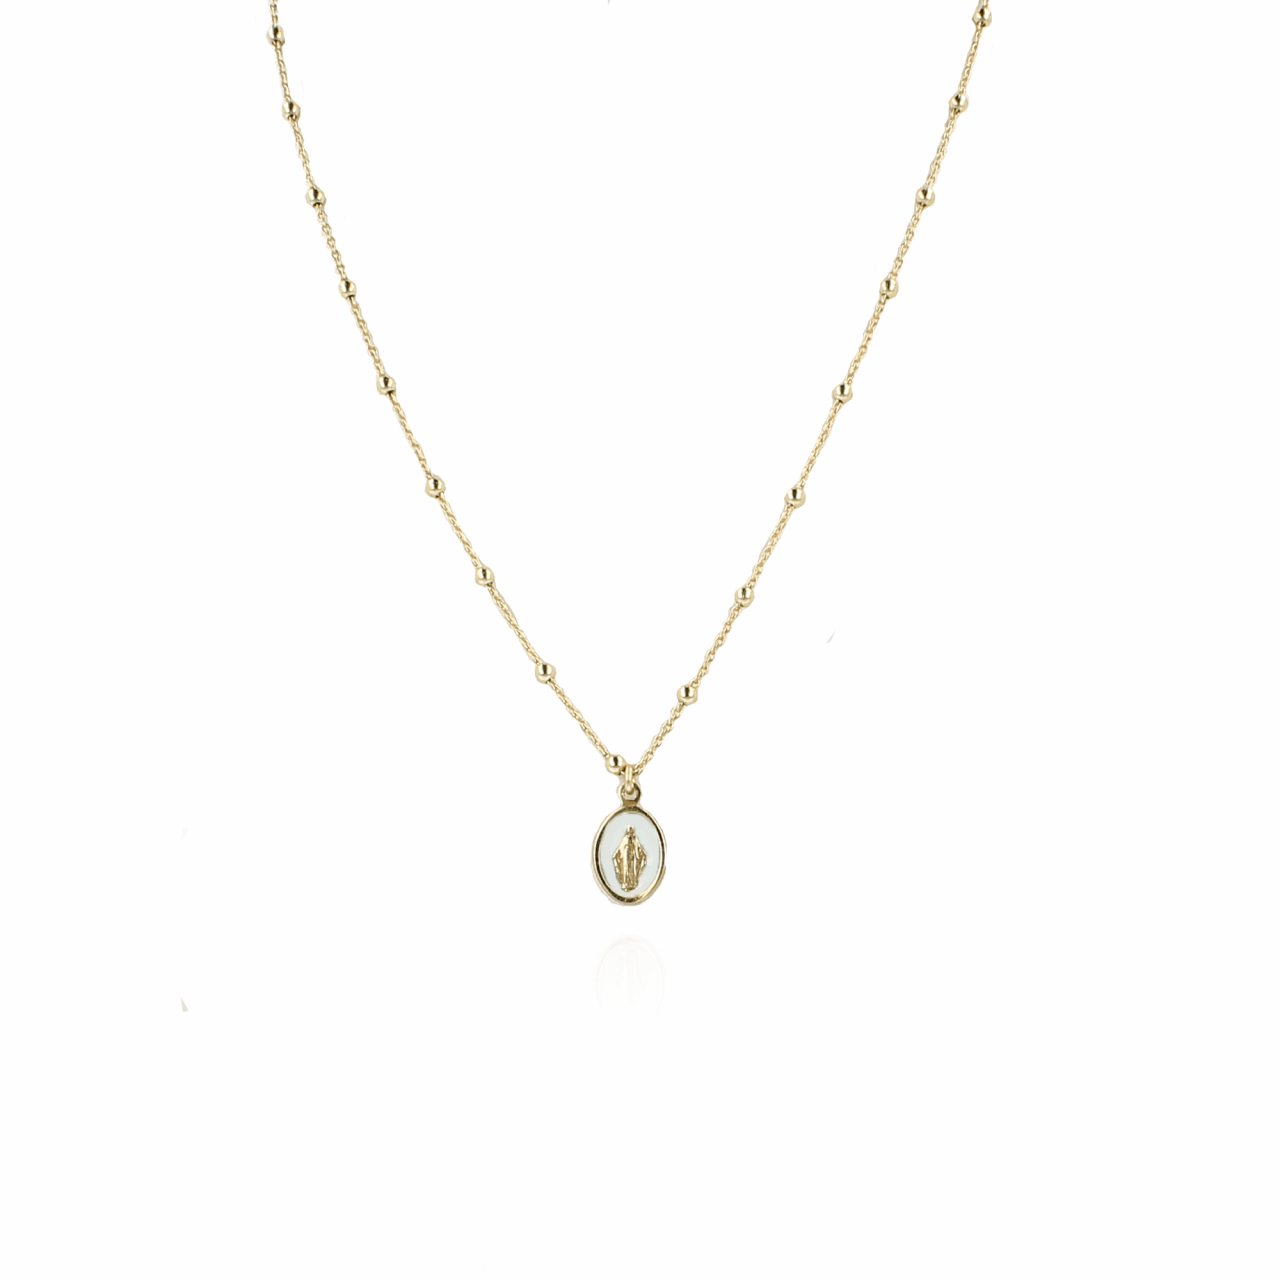 Golden Madonna White Necklace